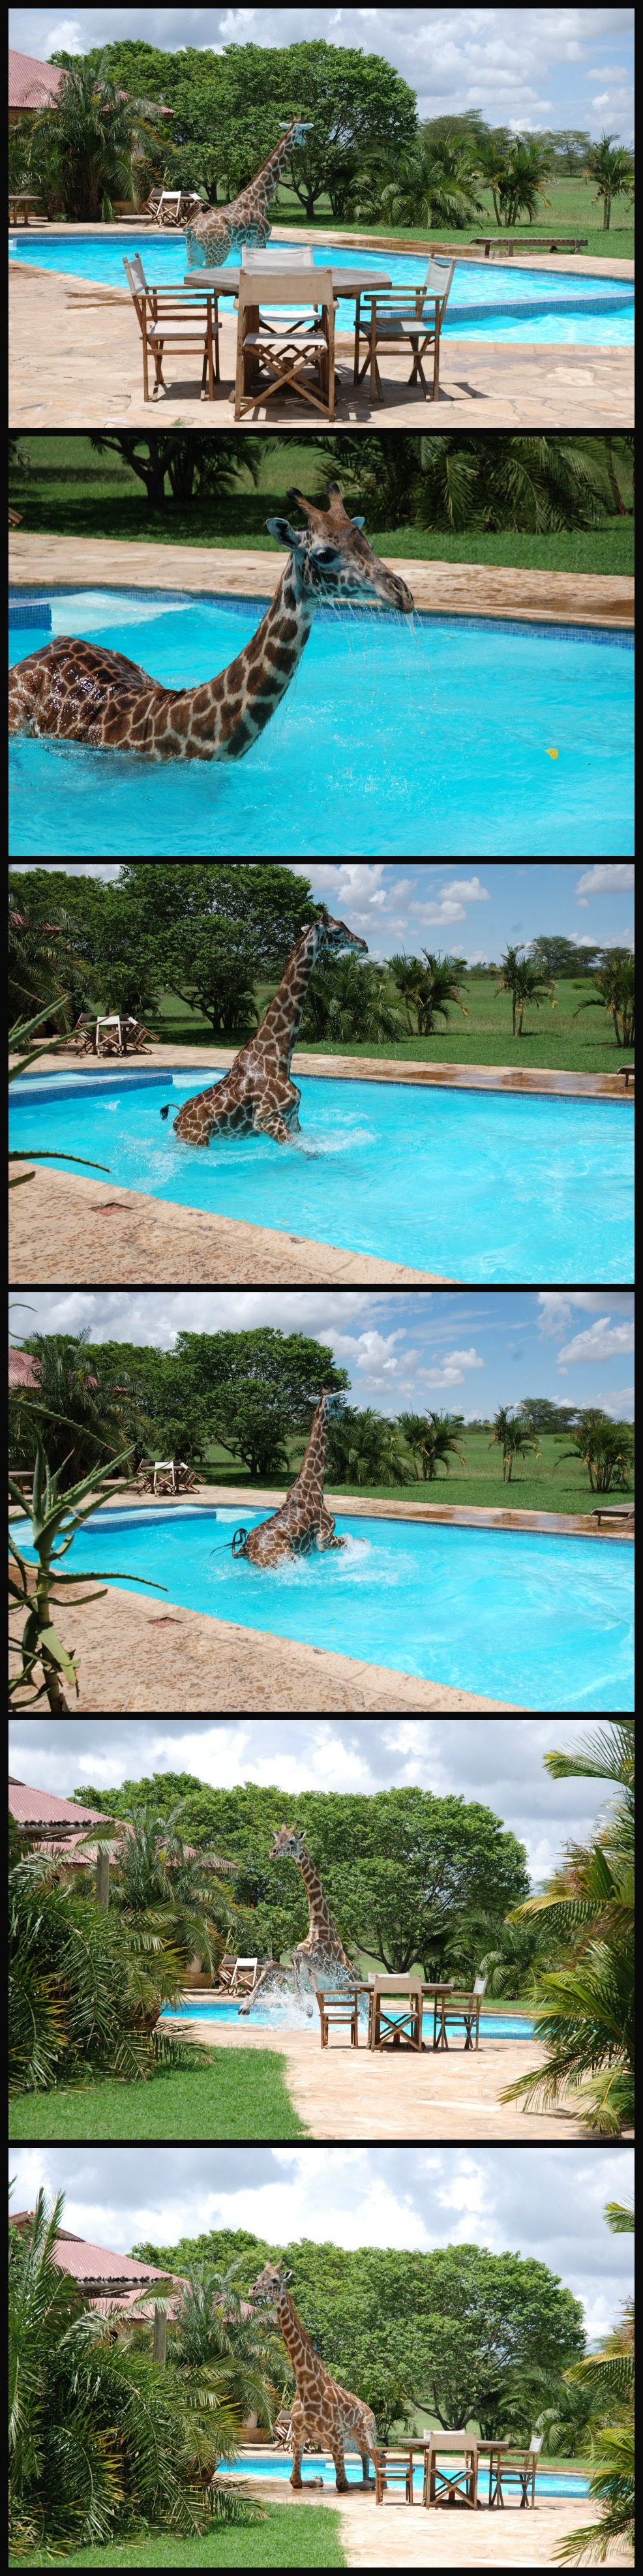 6 pictures of a Giraffe having a blast in a swimming pool